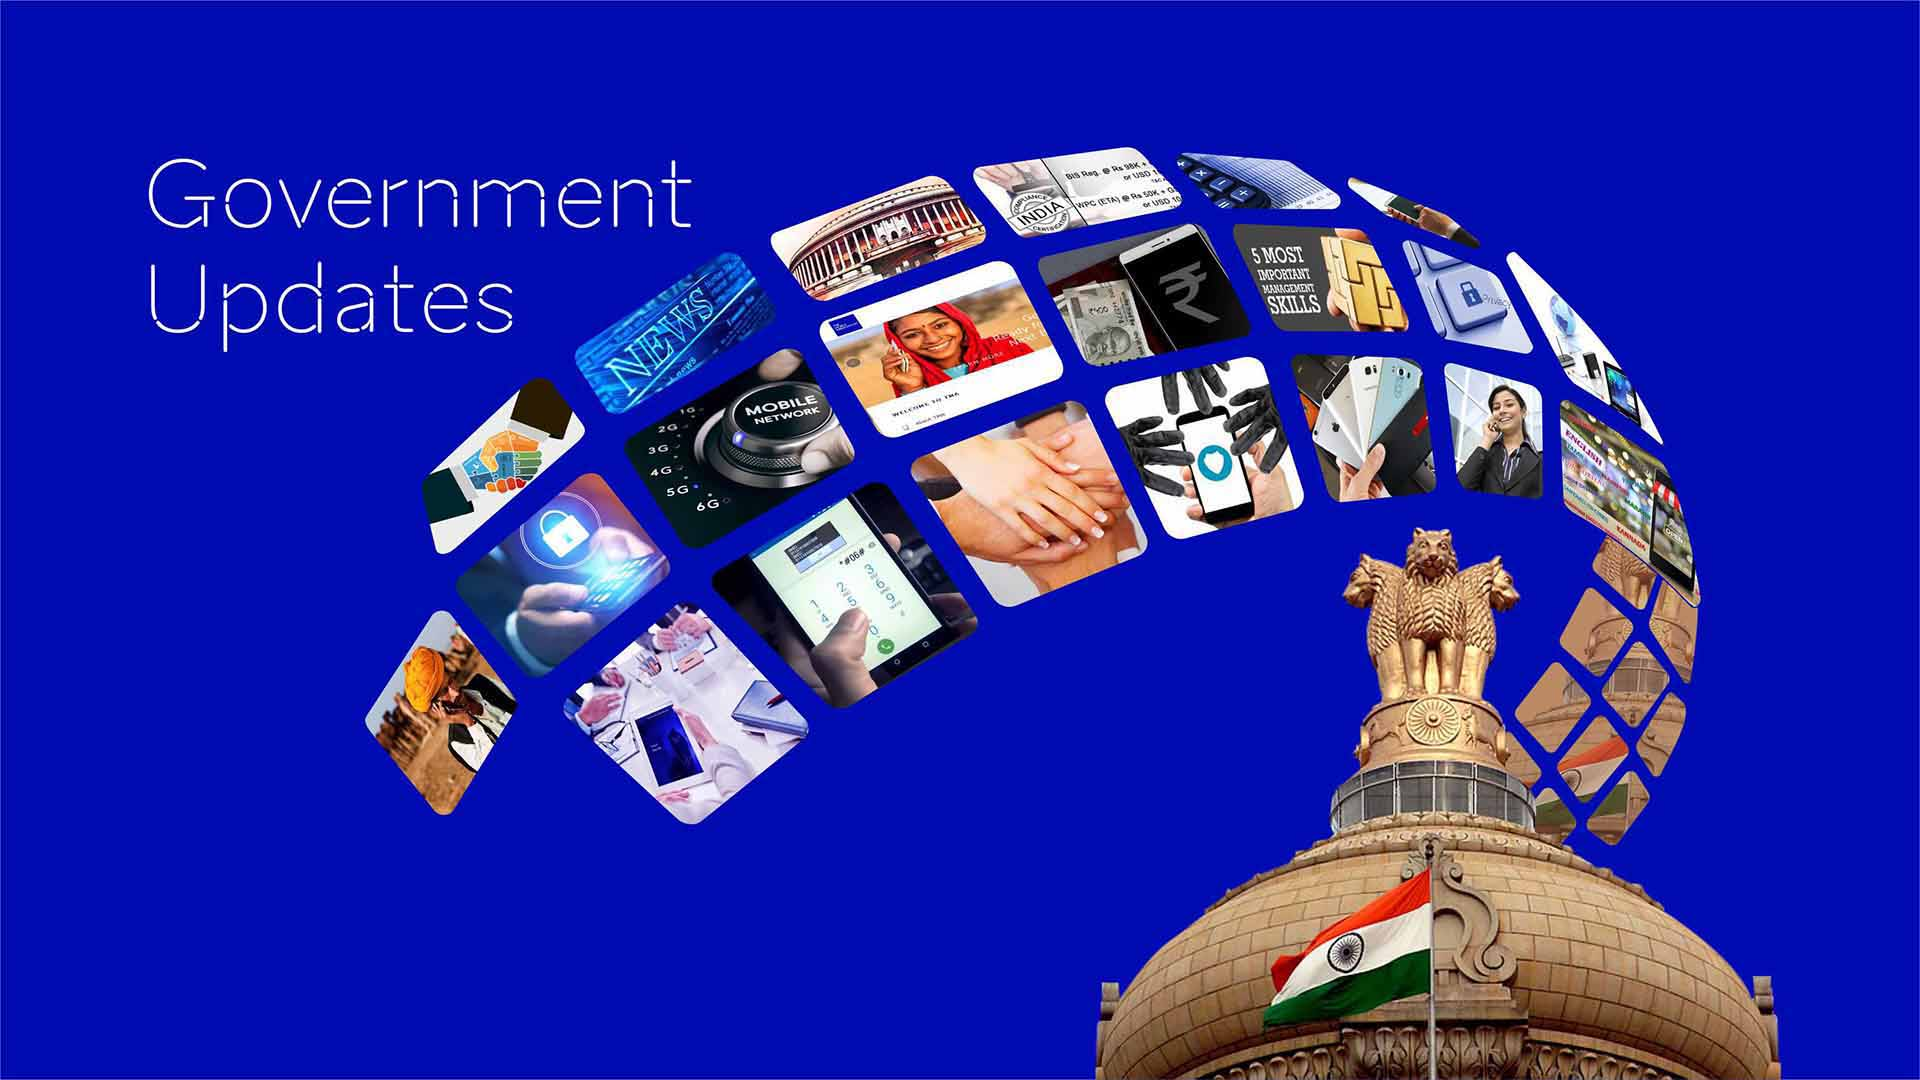 Government Updates of The Mobile Association